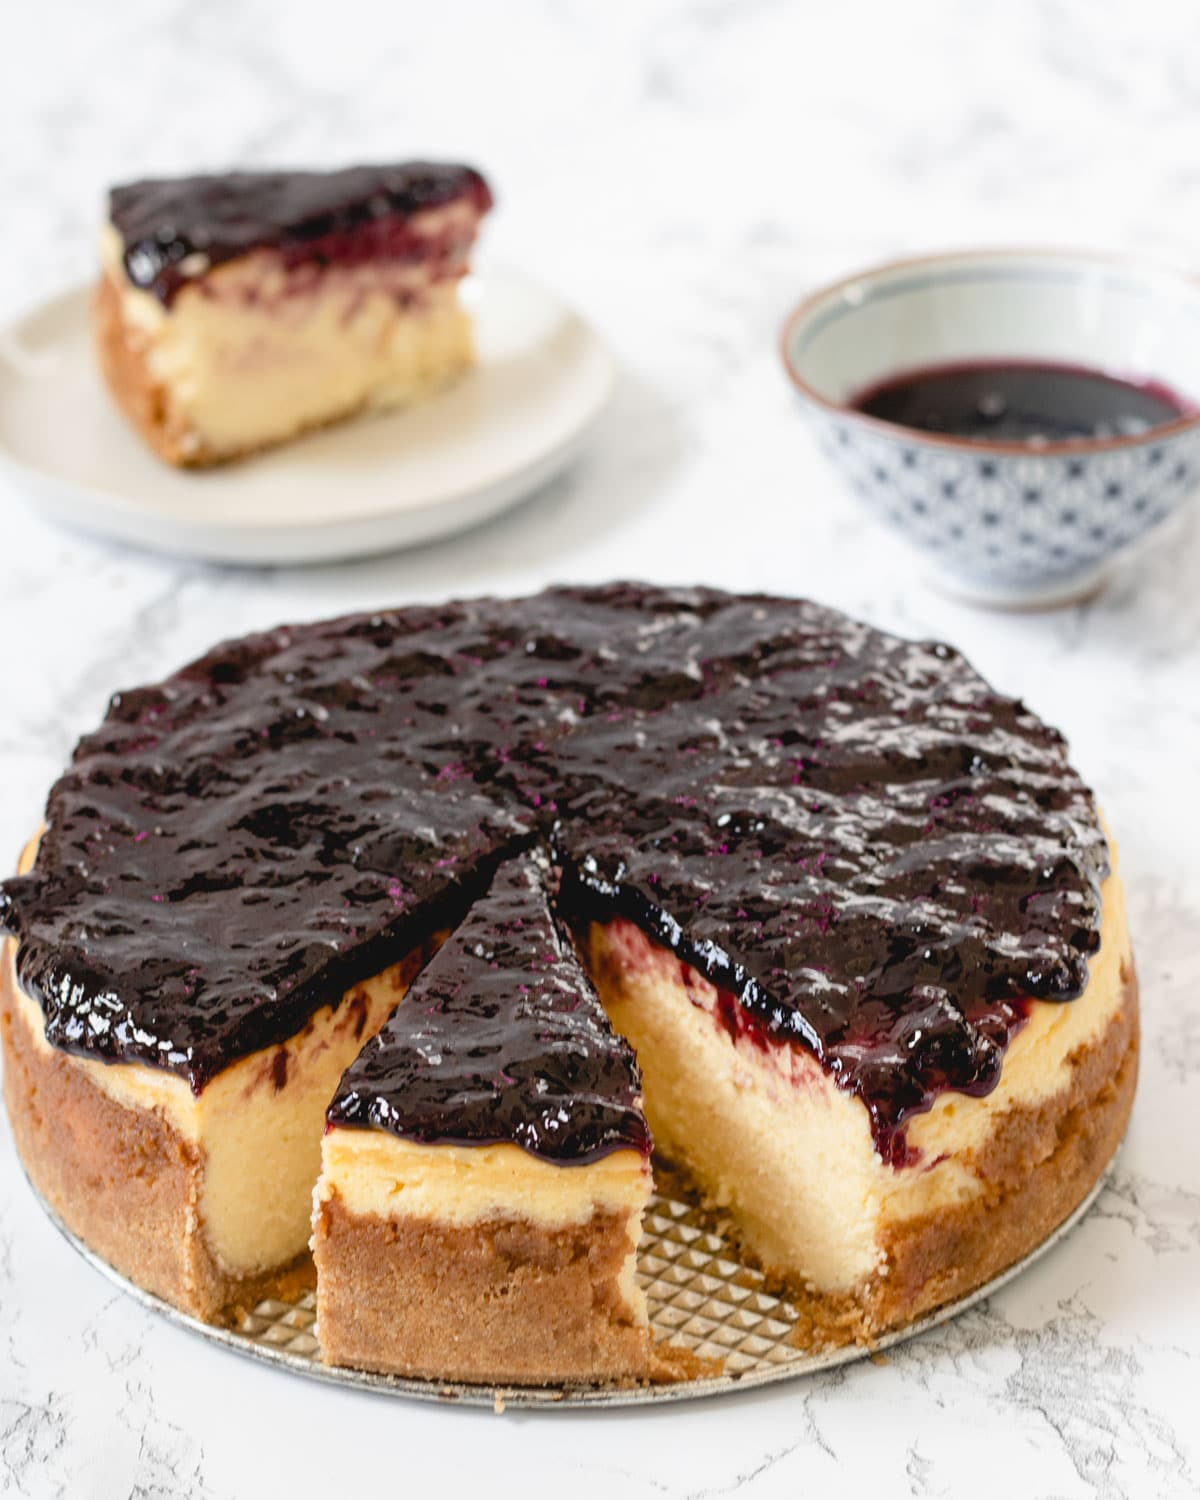 Huckleberry cheesecake with a slice offset.